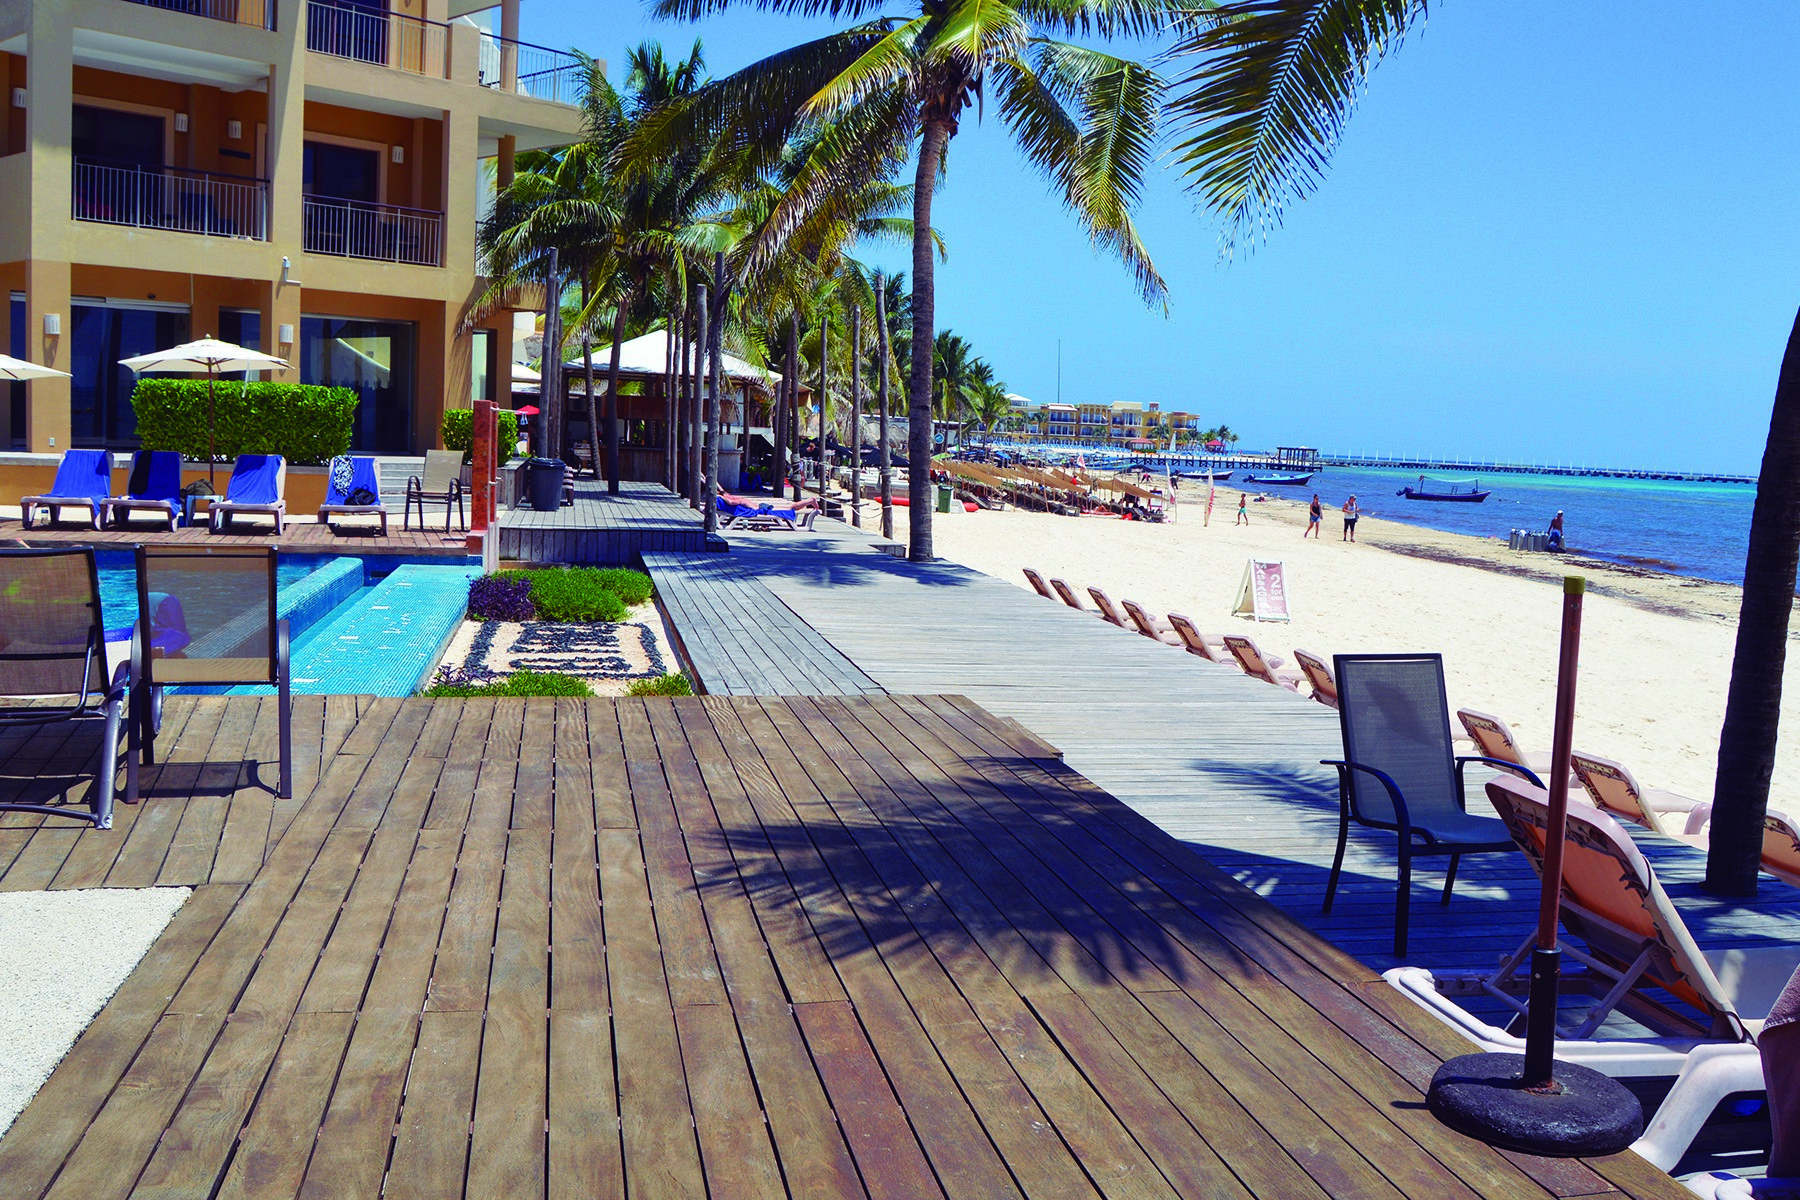 Additional photo for property listing at BEACHFRONT CONDO IN A PRIVILEGED LOCATION Beachfront condo in a privileged location North 8th Street & 10th Playa Del Carmen, Quintana Roo 77710 Mexico